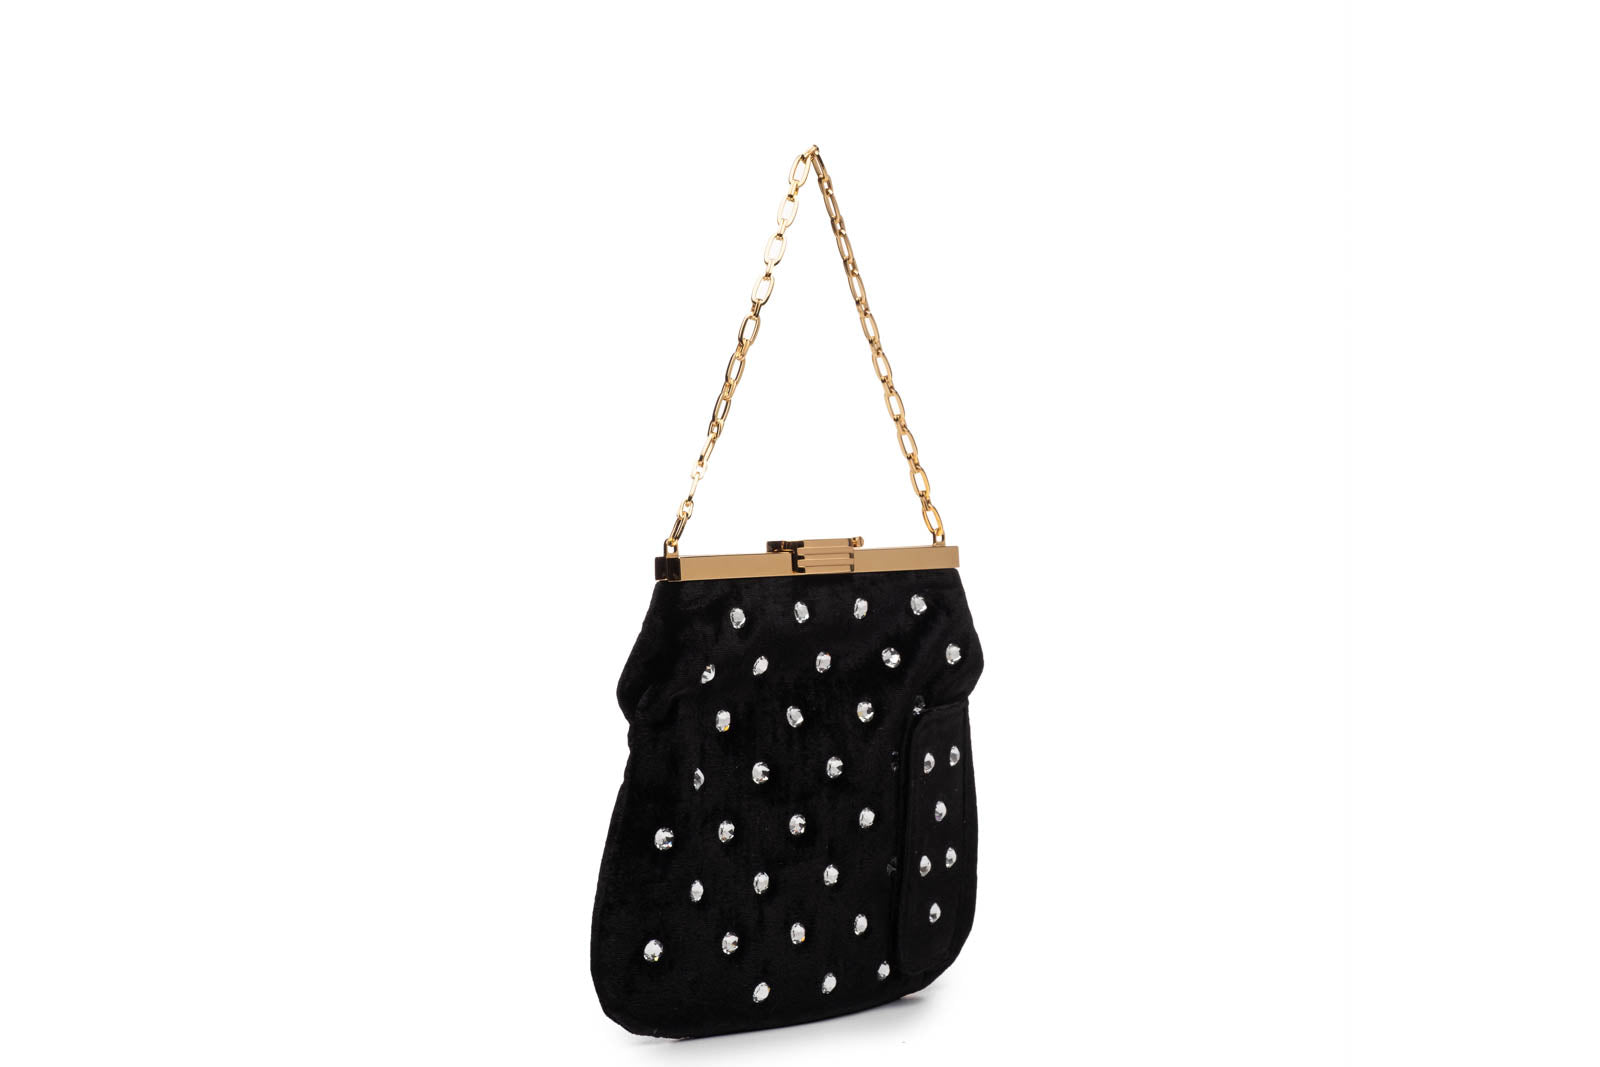 4 AM Bag in Crystal Studded Black Velvet with 24k Gold Dipped Hardware